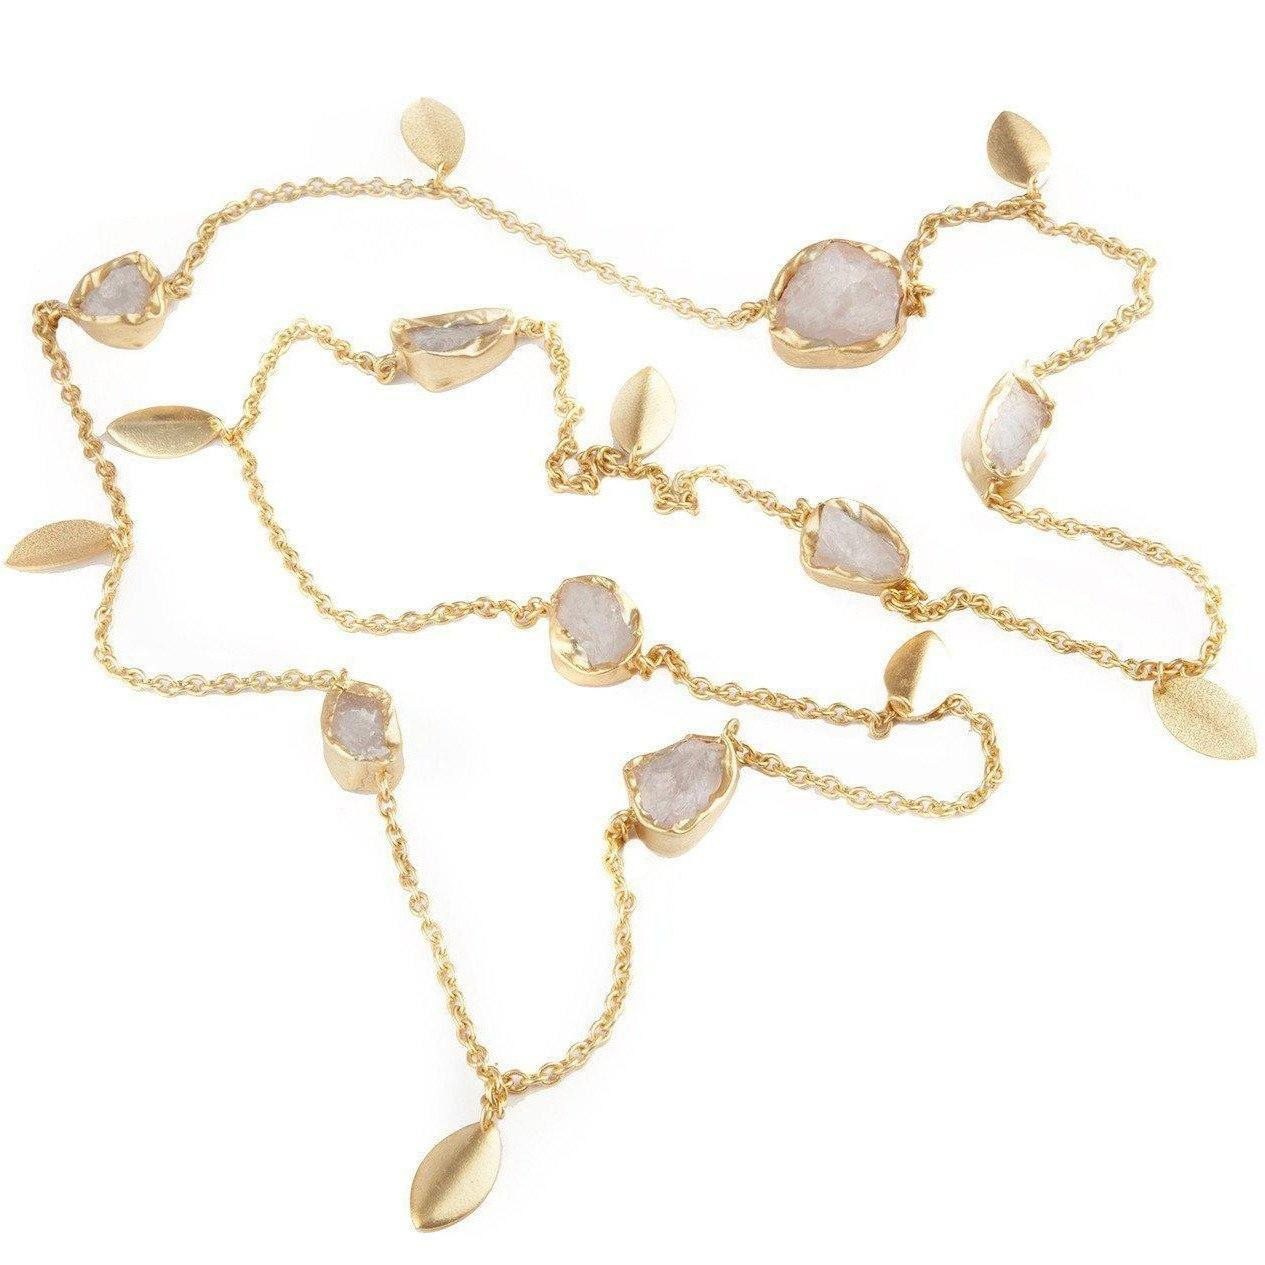 Prairie stone chain in raw rock quartz - Neckpieces